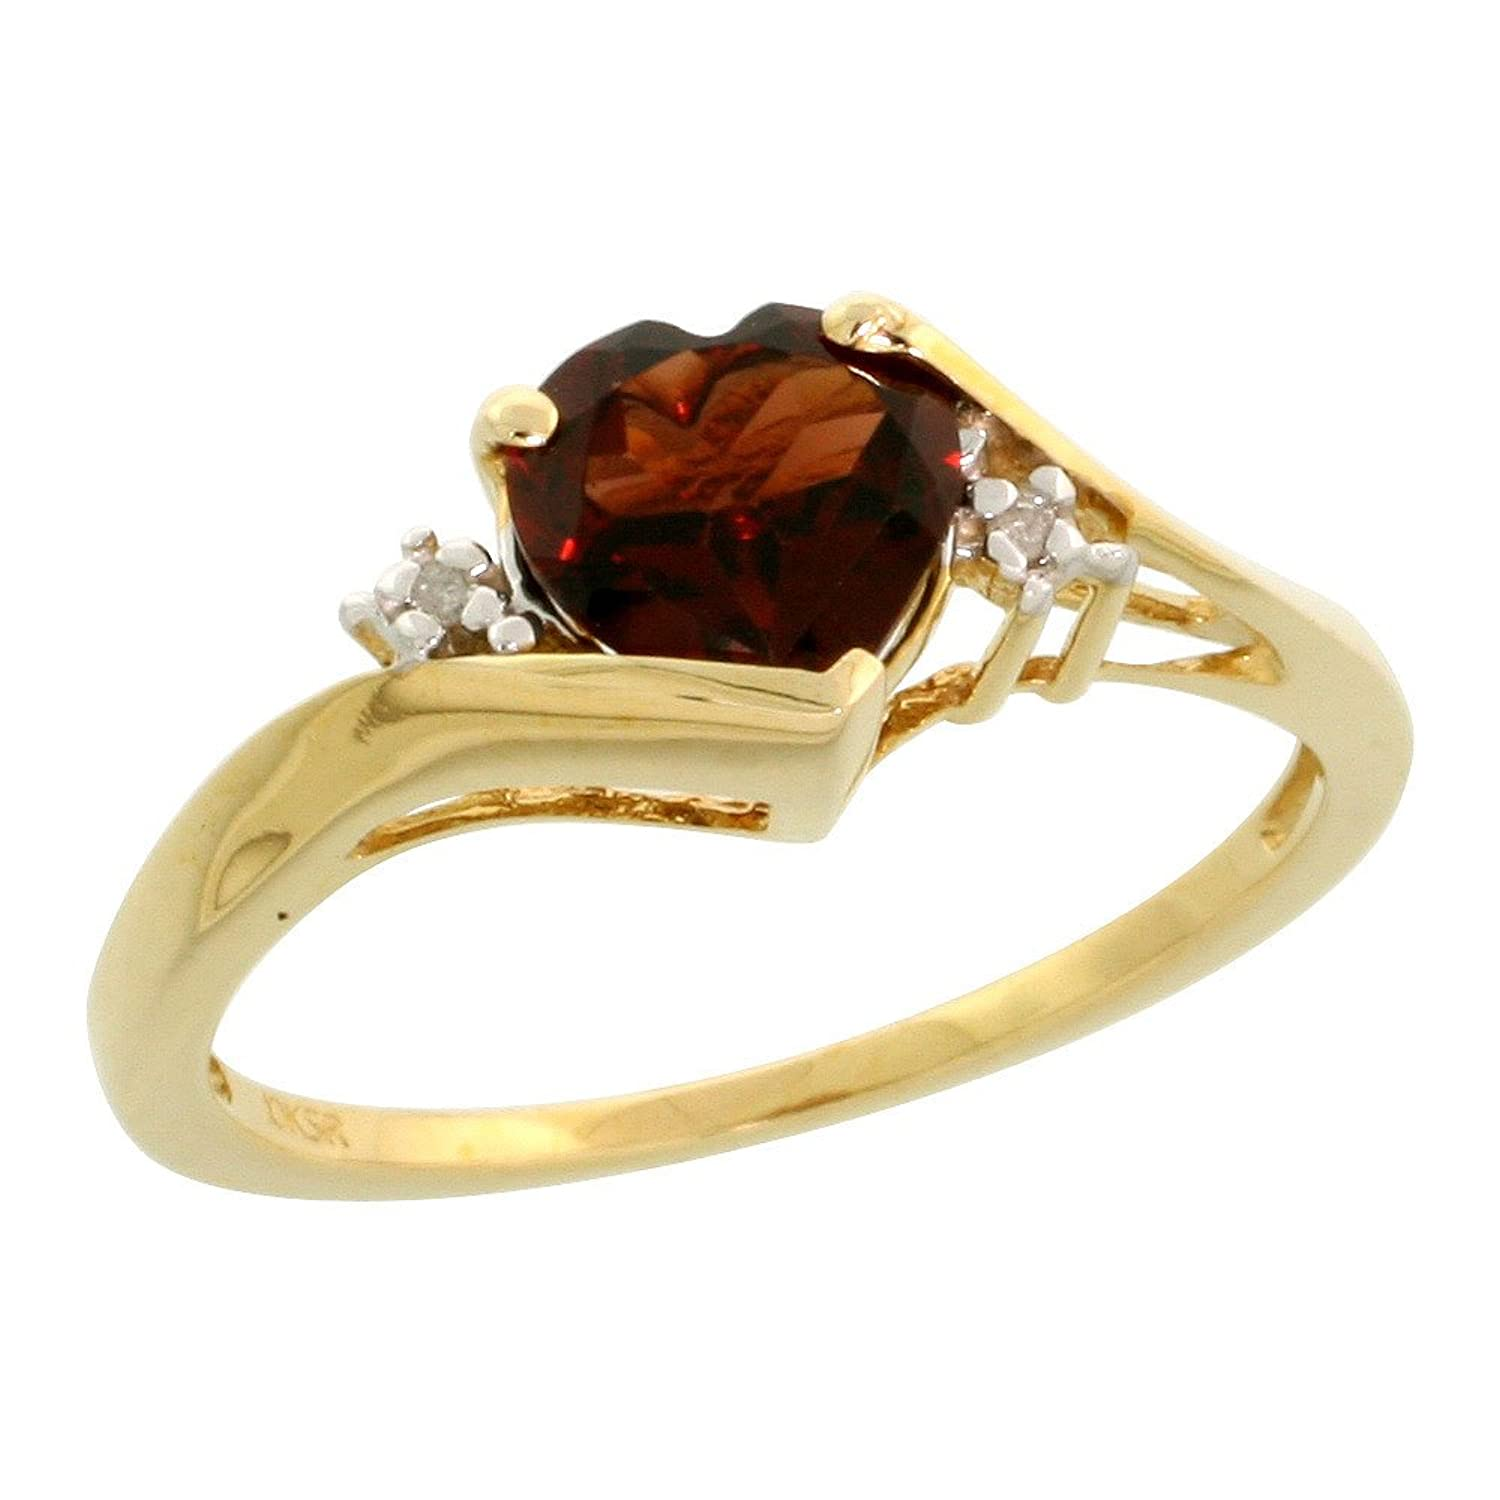 10k Gold Heart Stone Ring w/ 1.50 Total Carat Heart-shaped 7mm Garnet Stone & Brilliant Cut Diamonds, Size 8